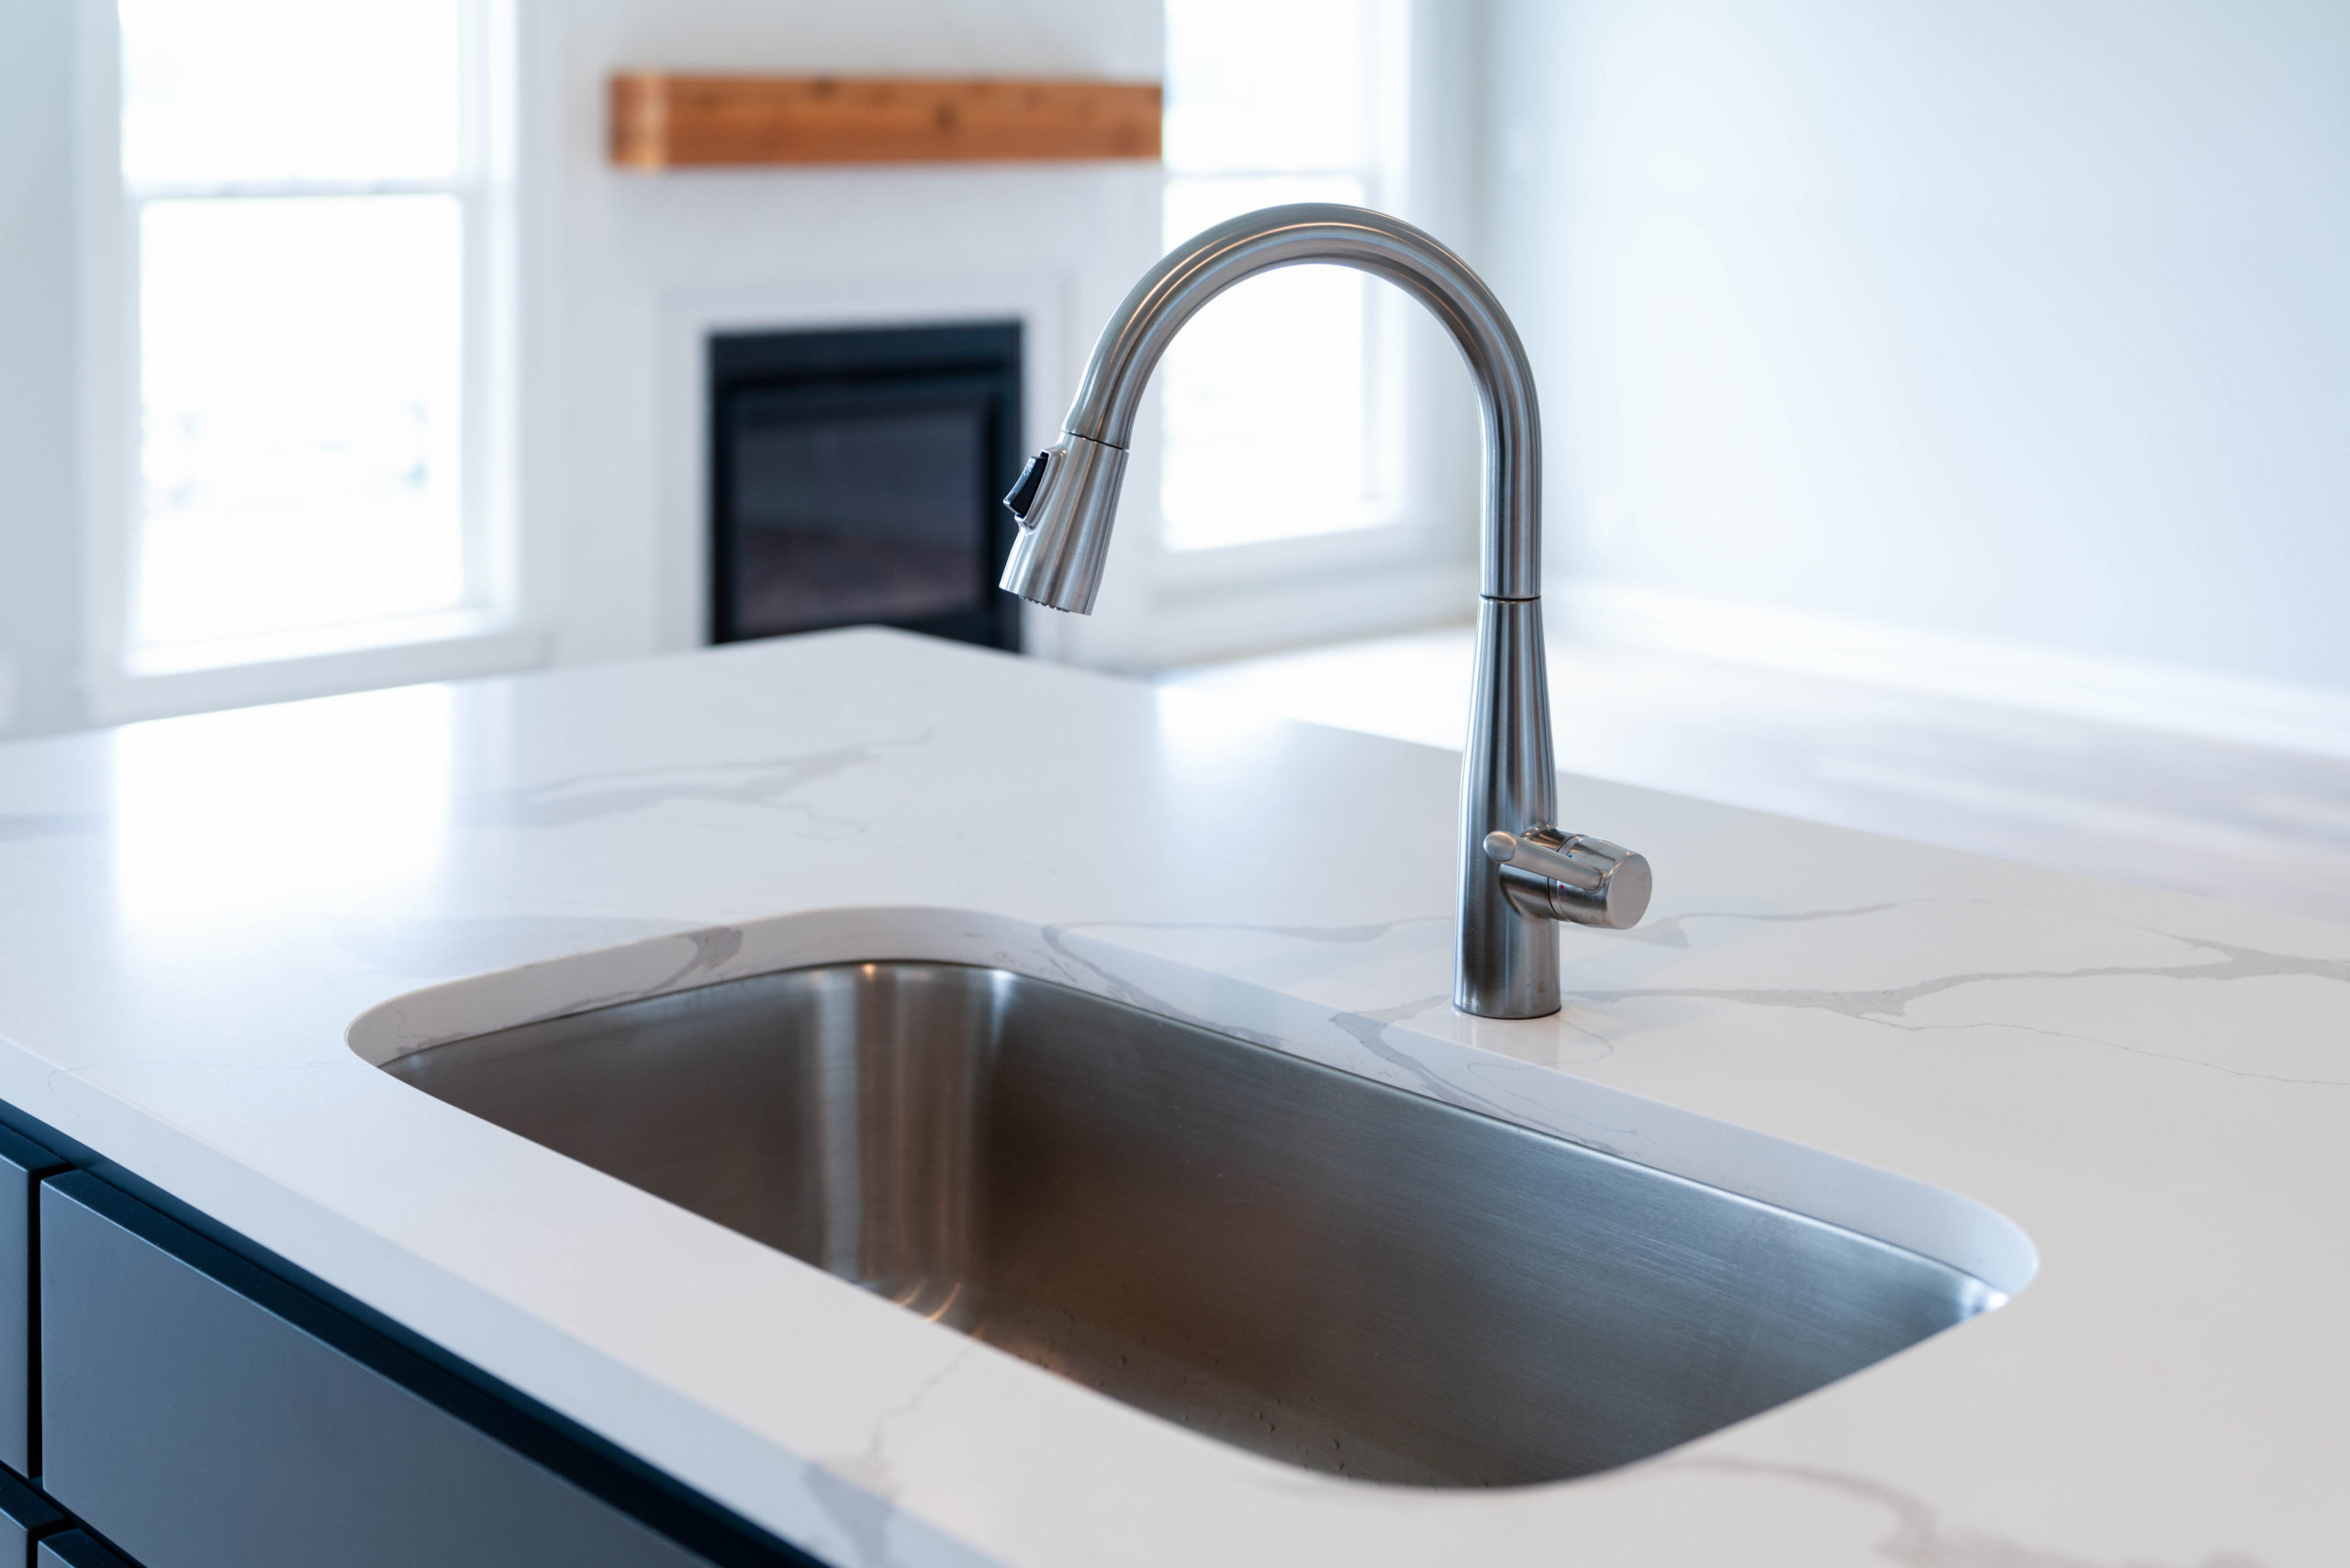 double kitchen sink in kitchen island with white marble countertop